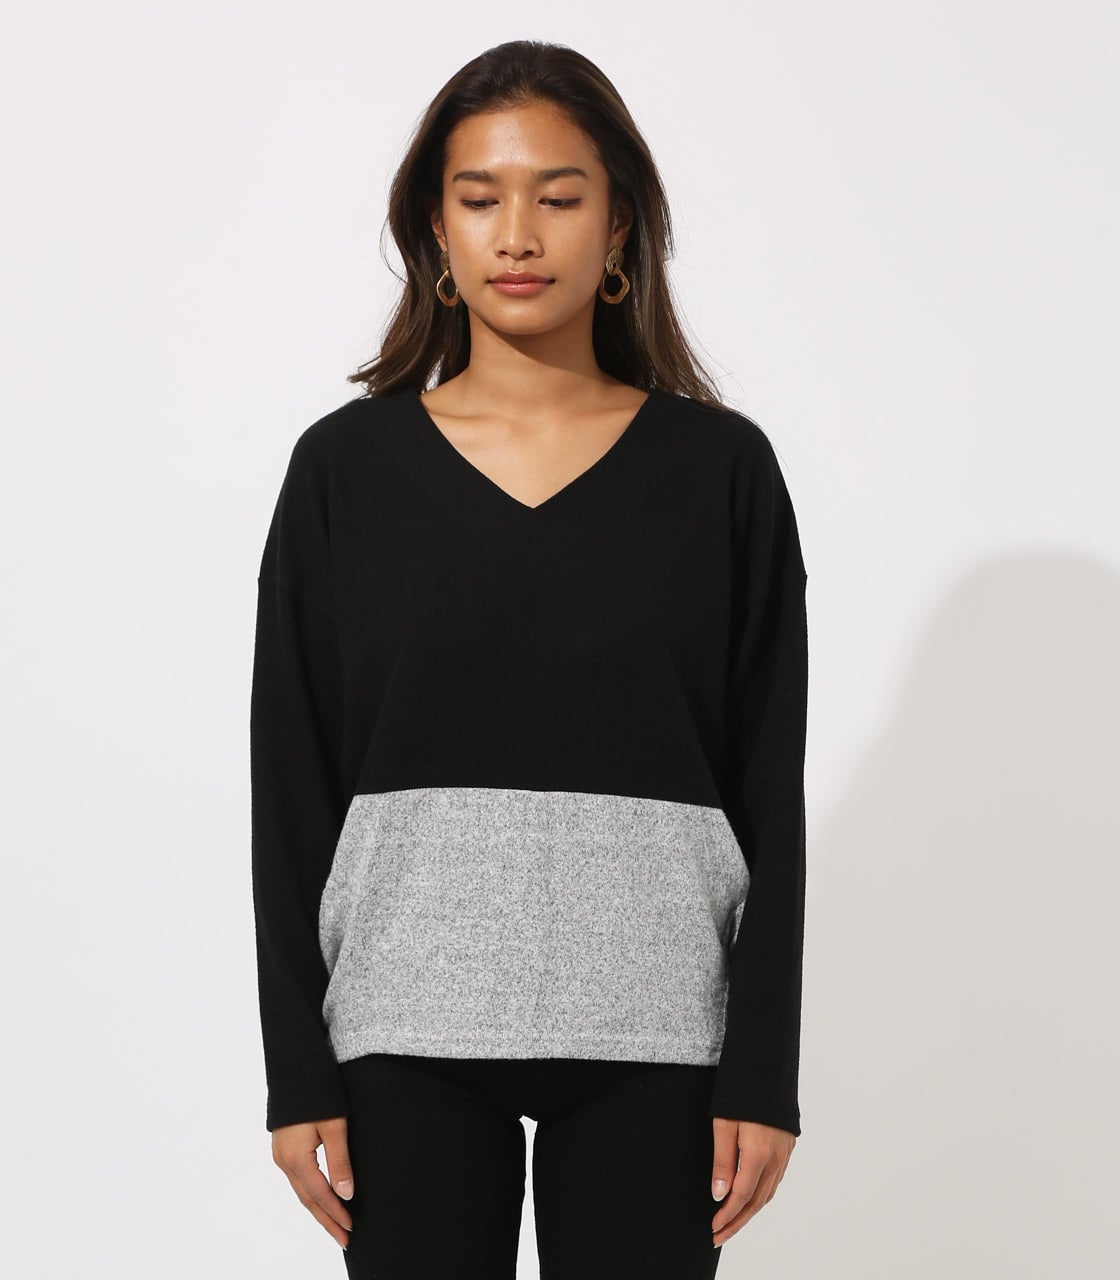 【AZUL BY MOUSSY】BICOLOR V NECK TOPS 詳細画像 柄BLK 5